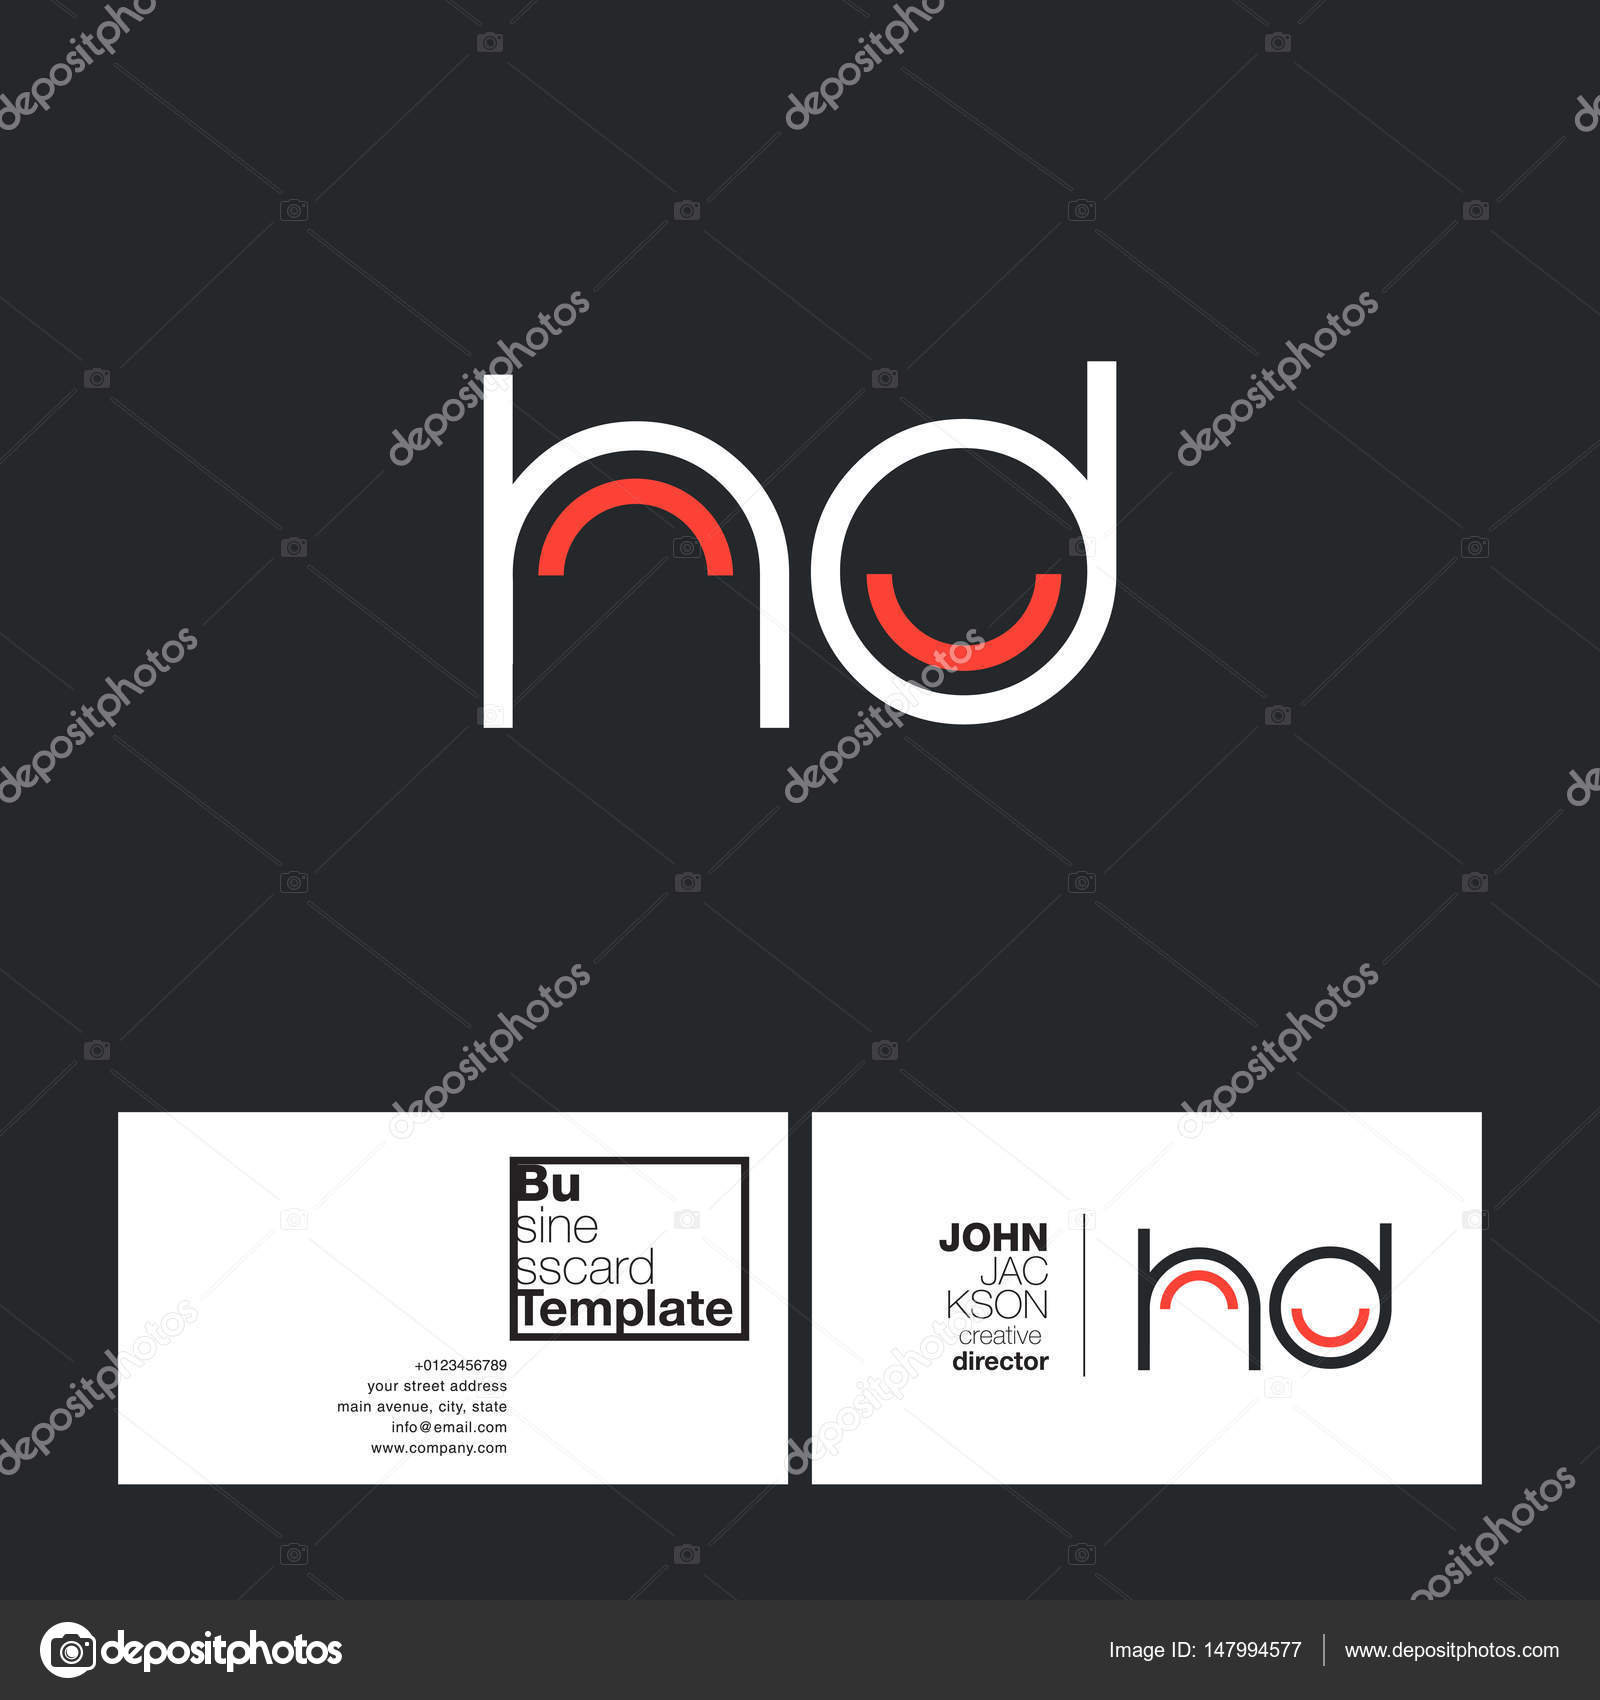 Round letter logo hd stock vector brainbistro 147994577 round letter hd company logo with business card template vector illustration corporate identity vector by brainbistro thecheapjerseys Image collections